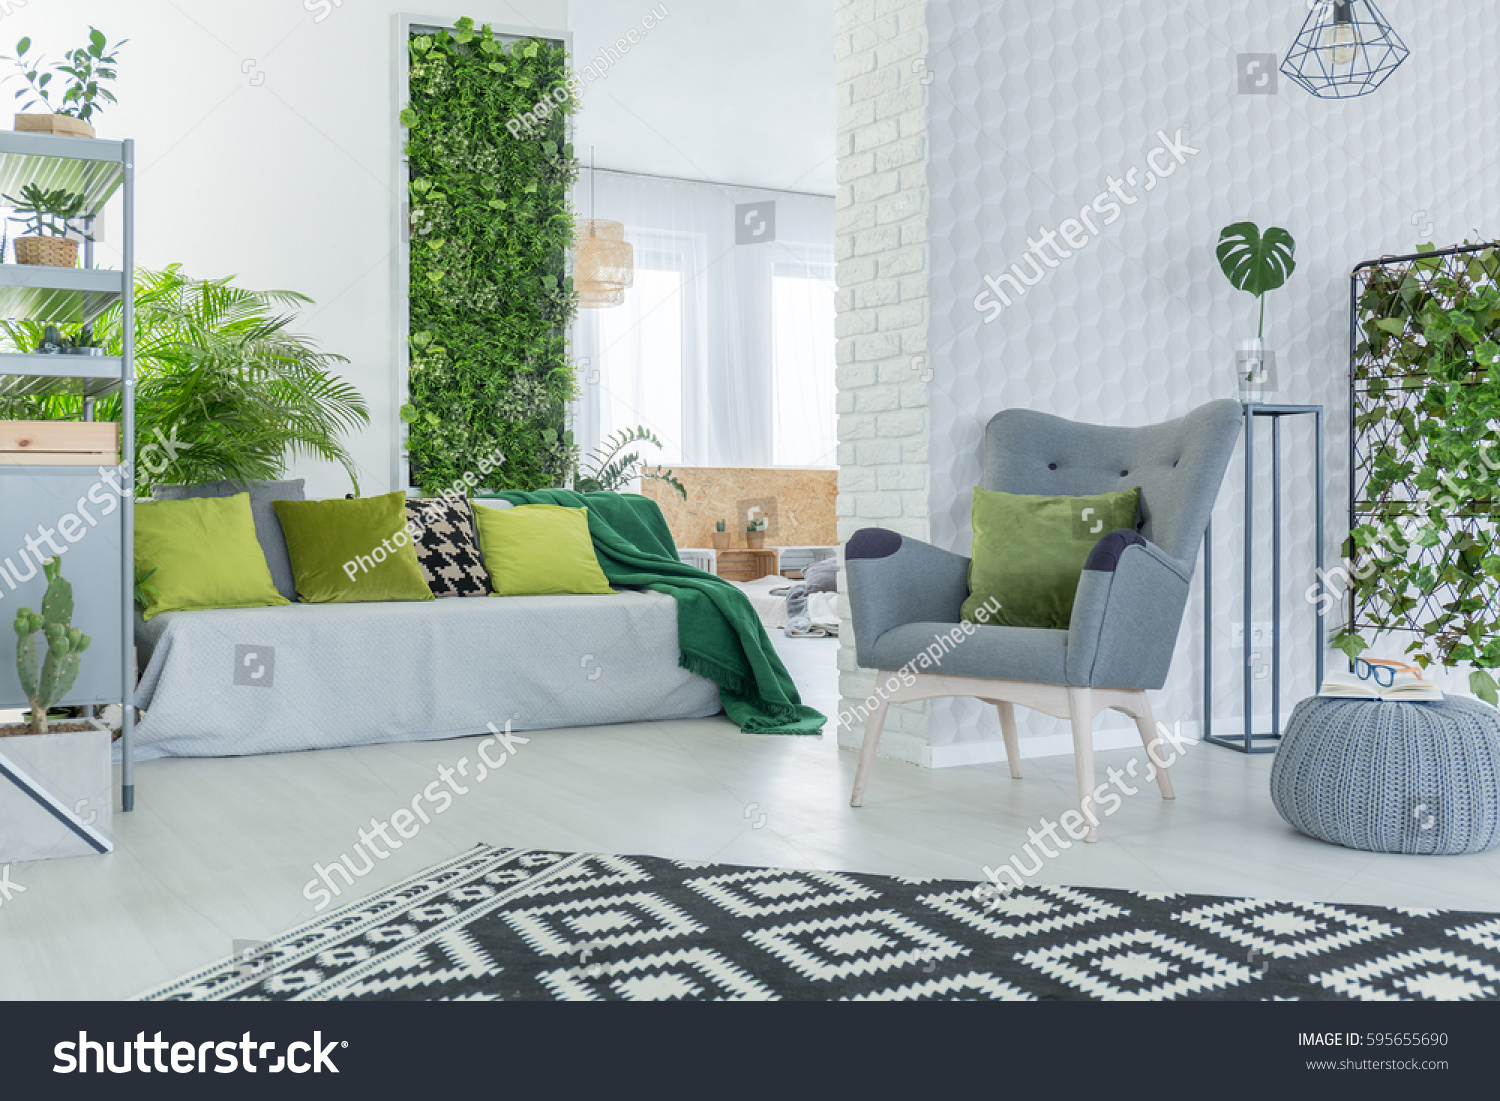 Bright Living Room With Sofa Armchair Pouf And Green Plants